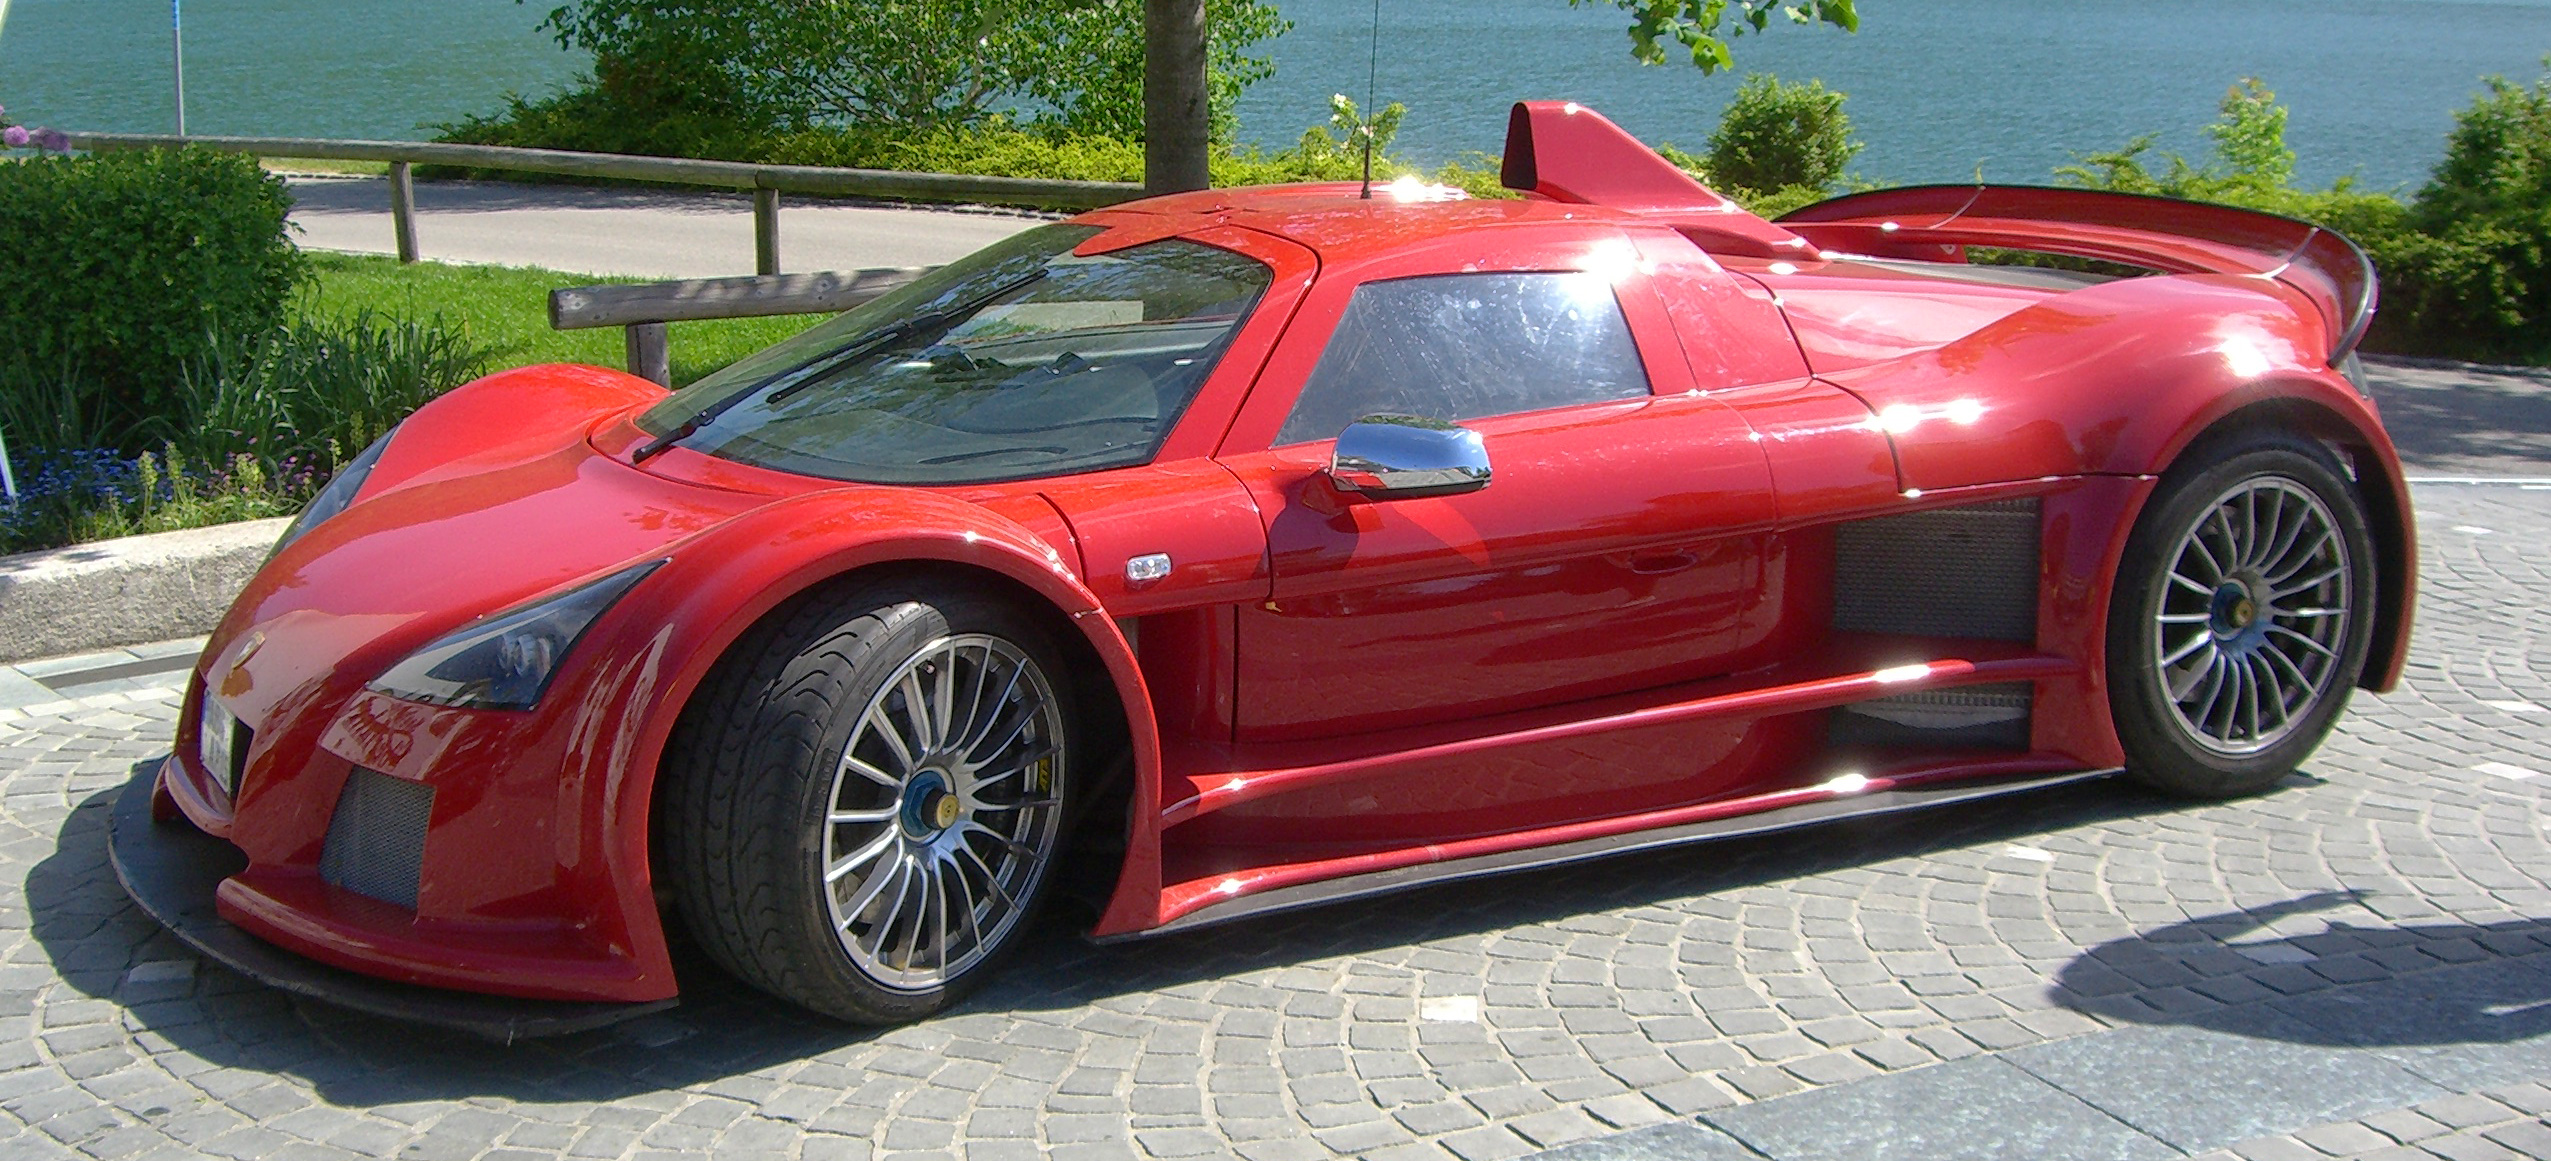 Gumpert Apollo, Image source: http://upload.wikimedia.org/wikipedia/commons/9/9e/Gumpert_Apollo_3.jpg